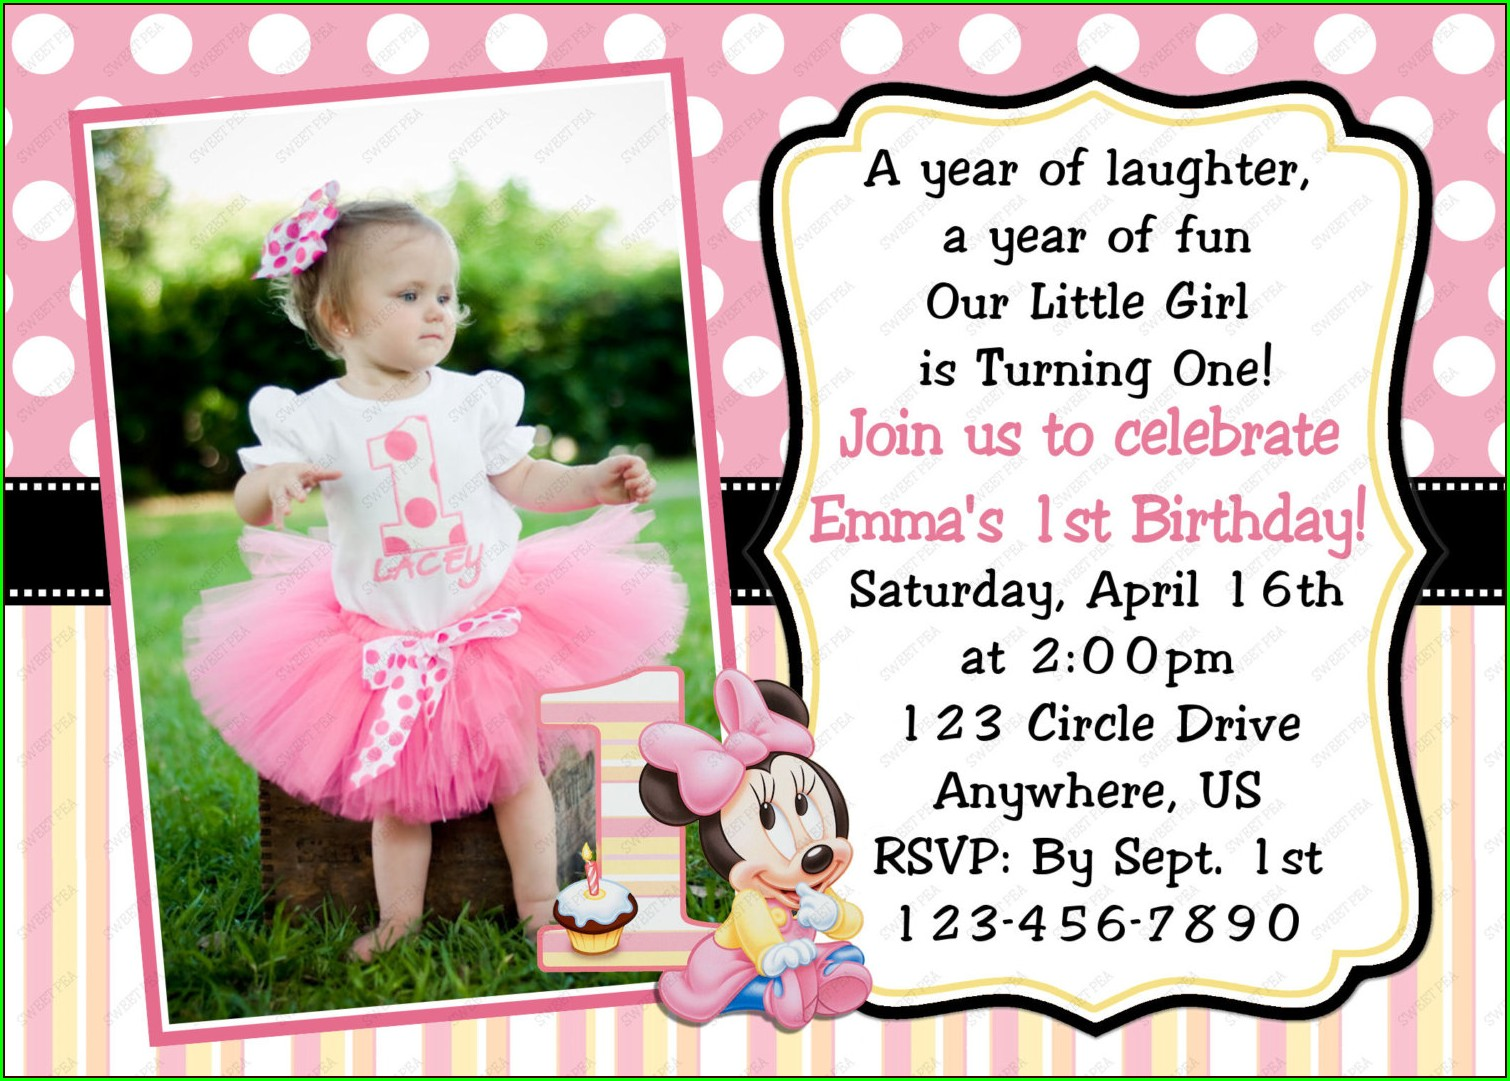 Customized Birthday Invitation Cards Online Free India